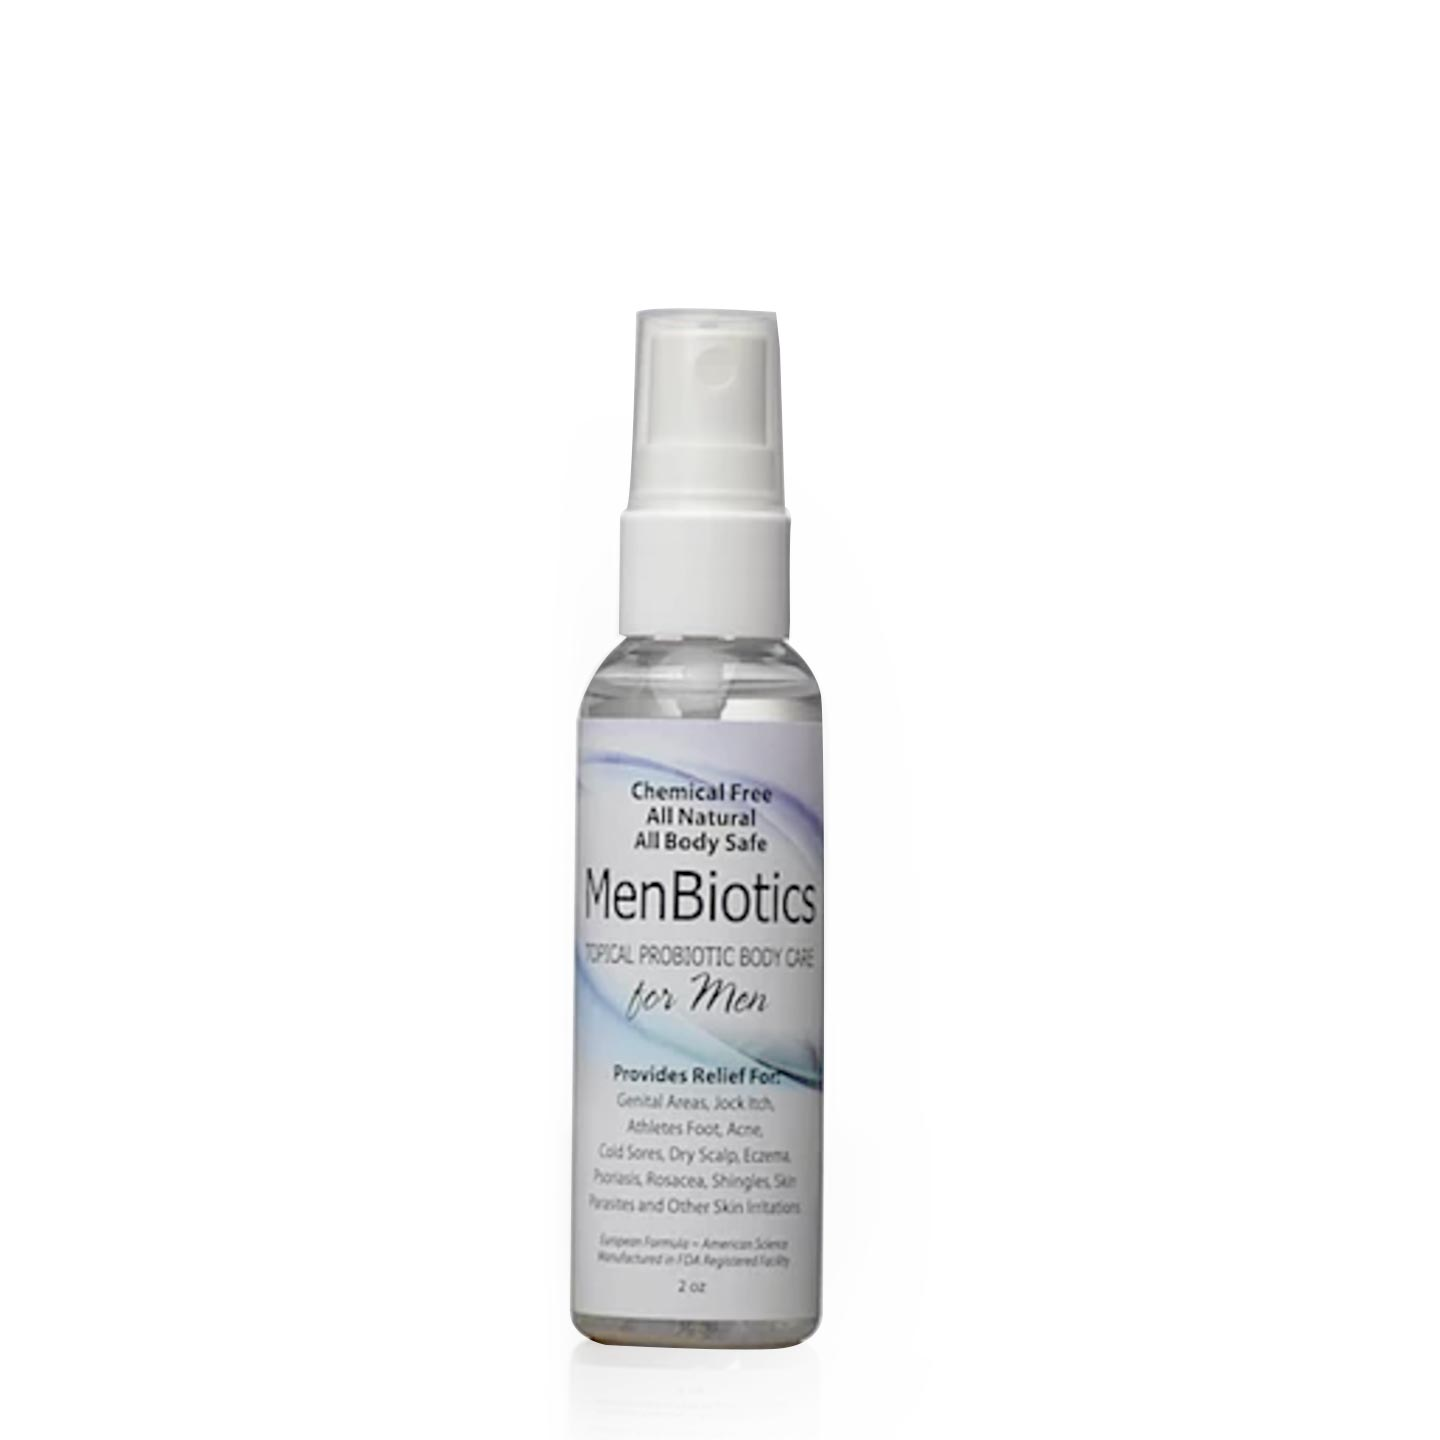 MenBiotics - Natural Probiotic Skin Care Spray for Men | Siani Skin Care Probiotic